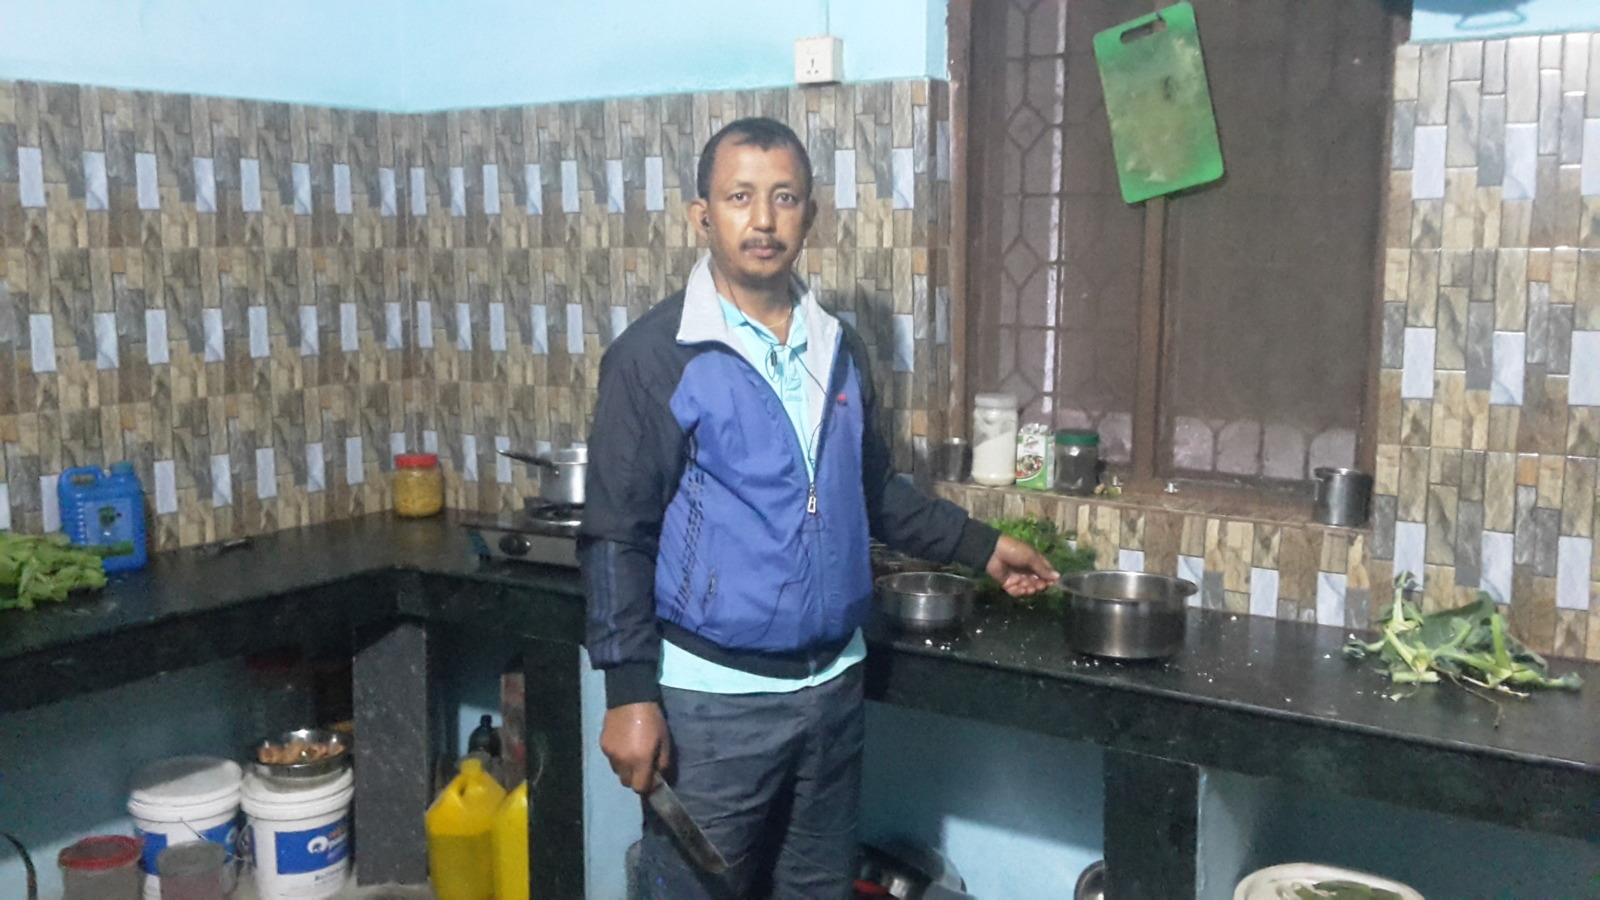 Guesthouse landlord